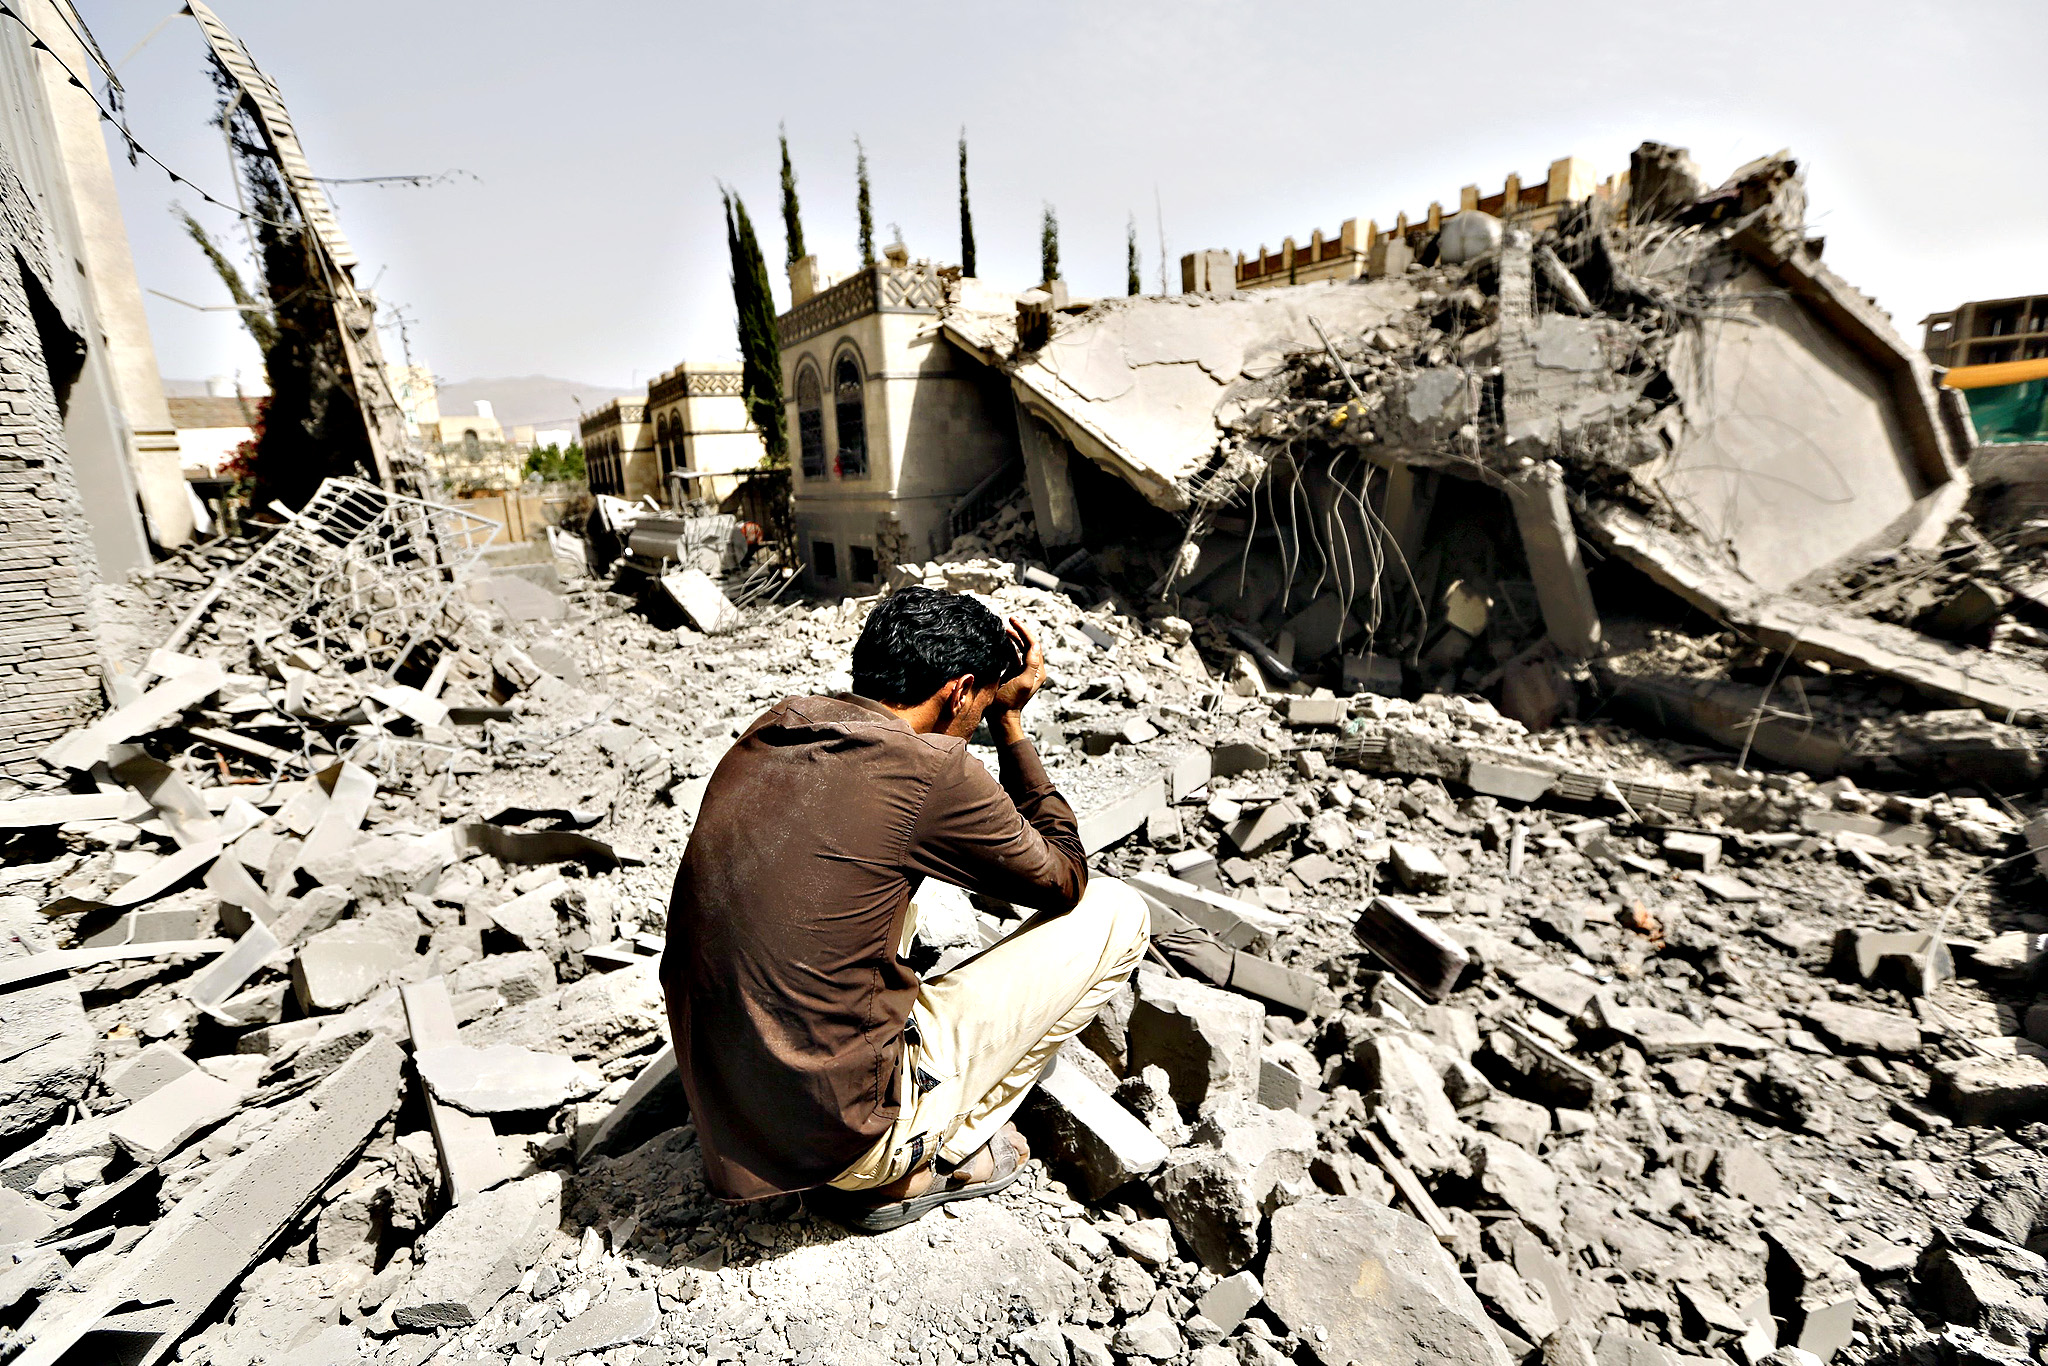 Guard sits on the rubble of the house of Brigadier Fouad al-Emad, an army commander loyal to the Houthis, after air strikes destroyed it in Sanaa, Yemen...A guard sits on the rubble of the house of Brigadier Fouad al-Emad, an army commander loyal to the Houthis, after air strikes destroyed it in Sanaa, Yemen June 15, 2015. Warplanes from a Saudi-led coalition bombarded Yemen's Houthi-controlled capital Sanaa overnight as the country's warring factions prepared for talks expected to start in Geneva on Monday